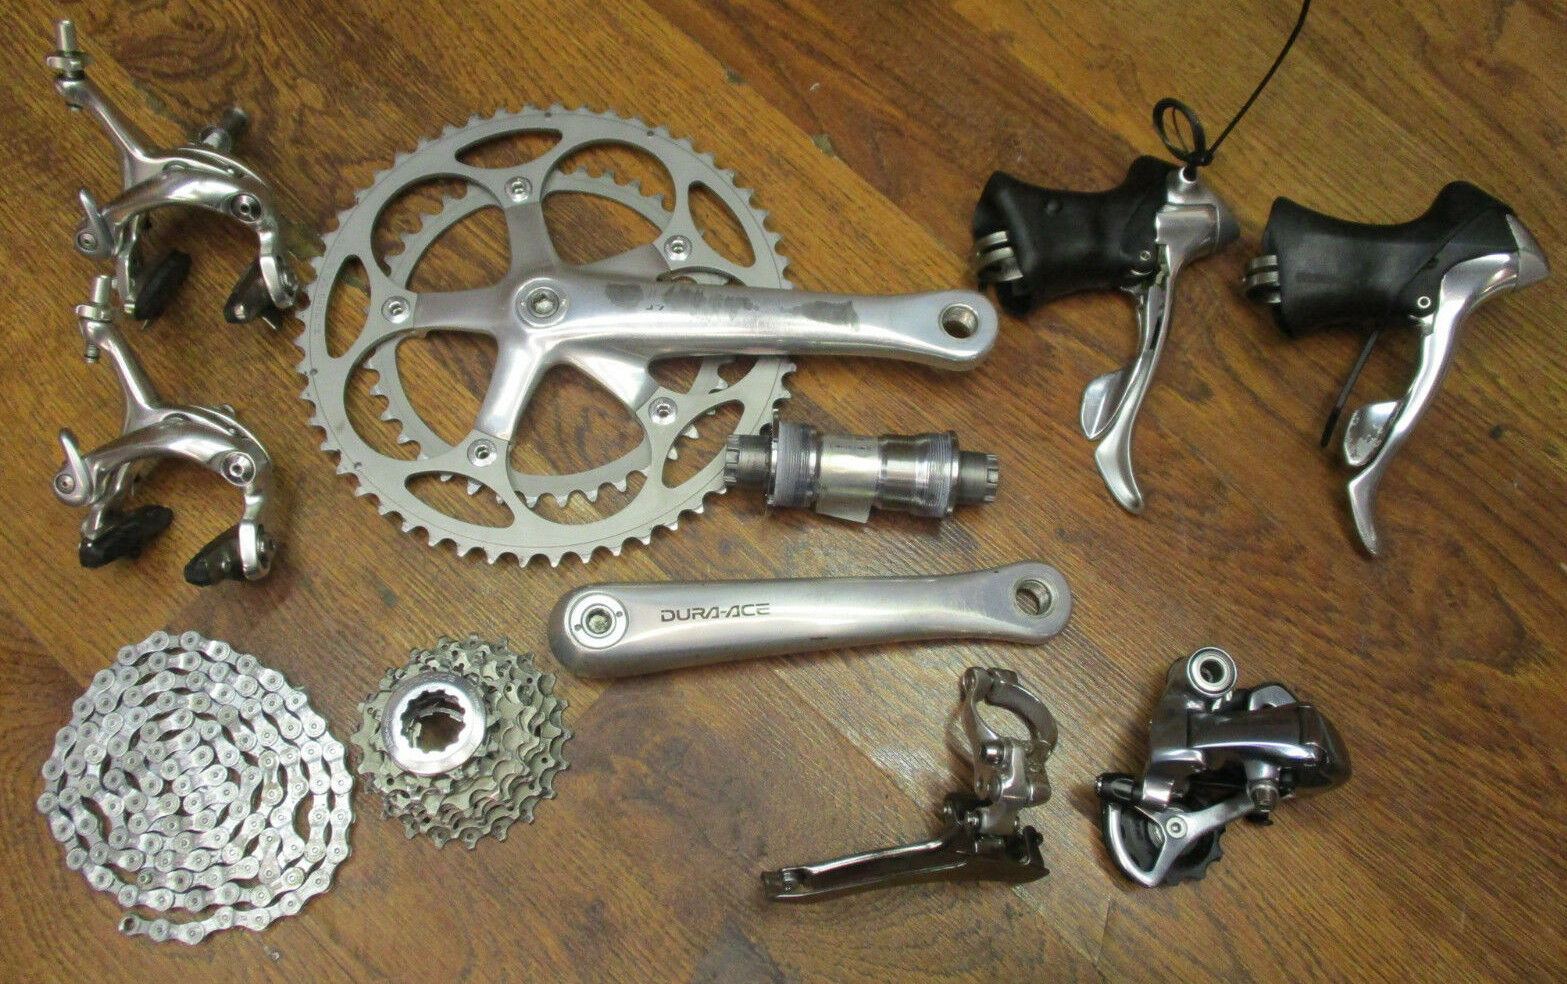 VINTAGE SHIMANO DURA ACE 7700  172.5L 53 39 GROUP GRUPPO BUILD KIT 9 SPEED DOUBLE  online store